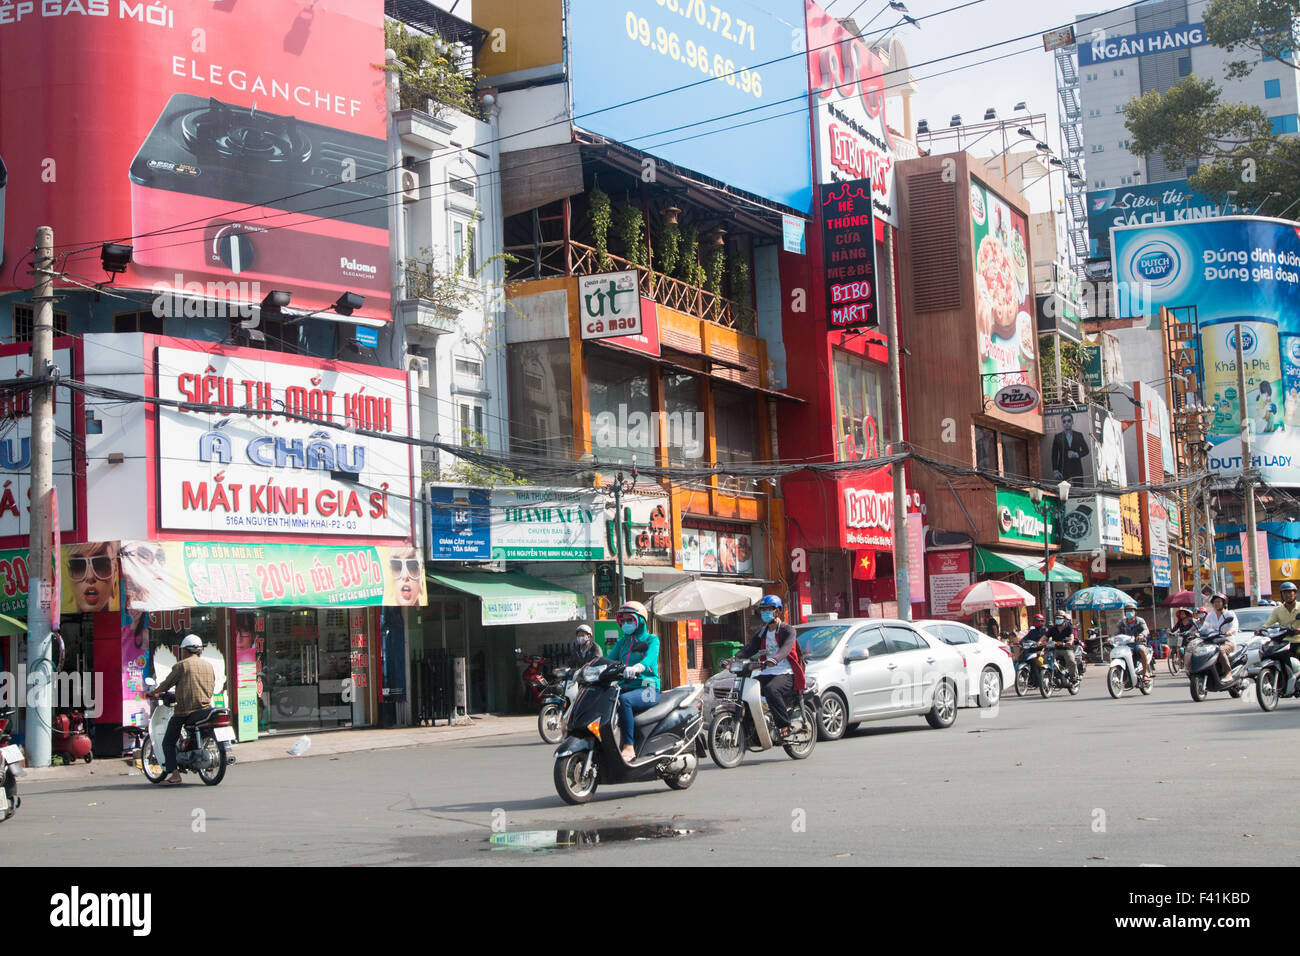 Image result for street scenein hcm city